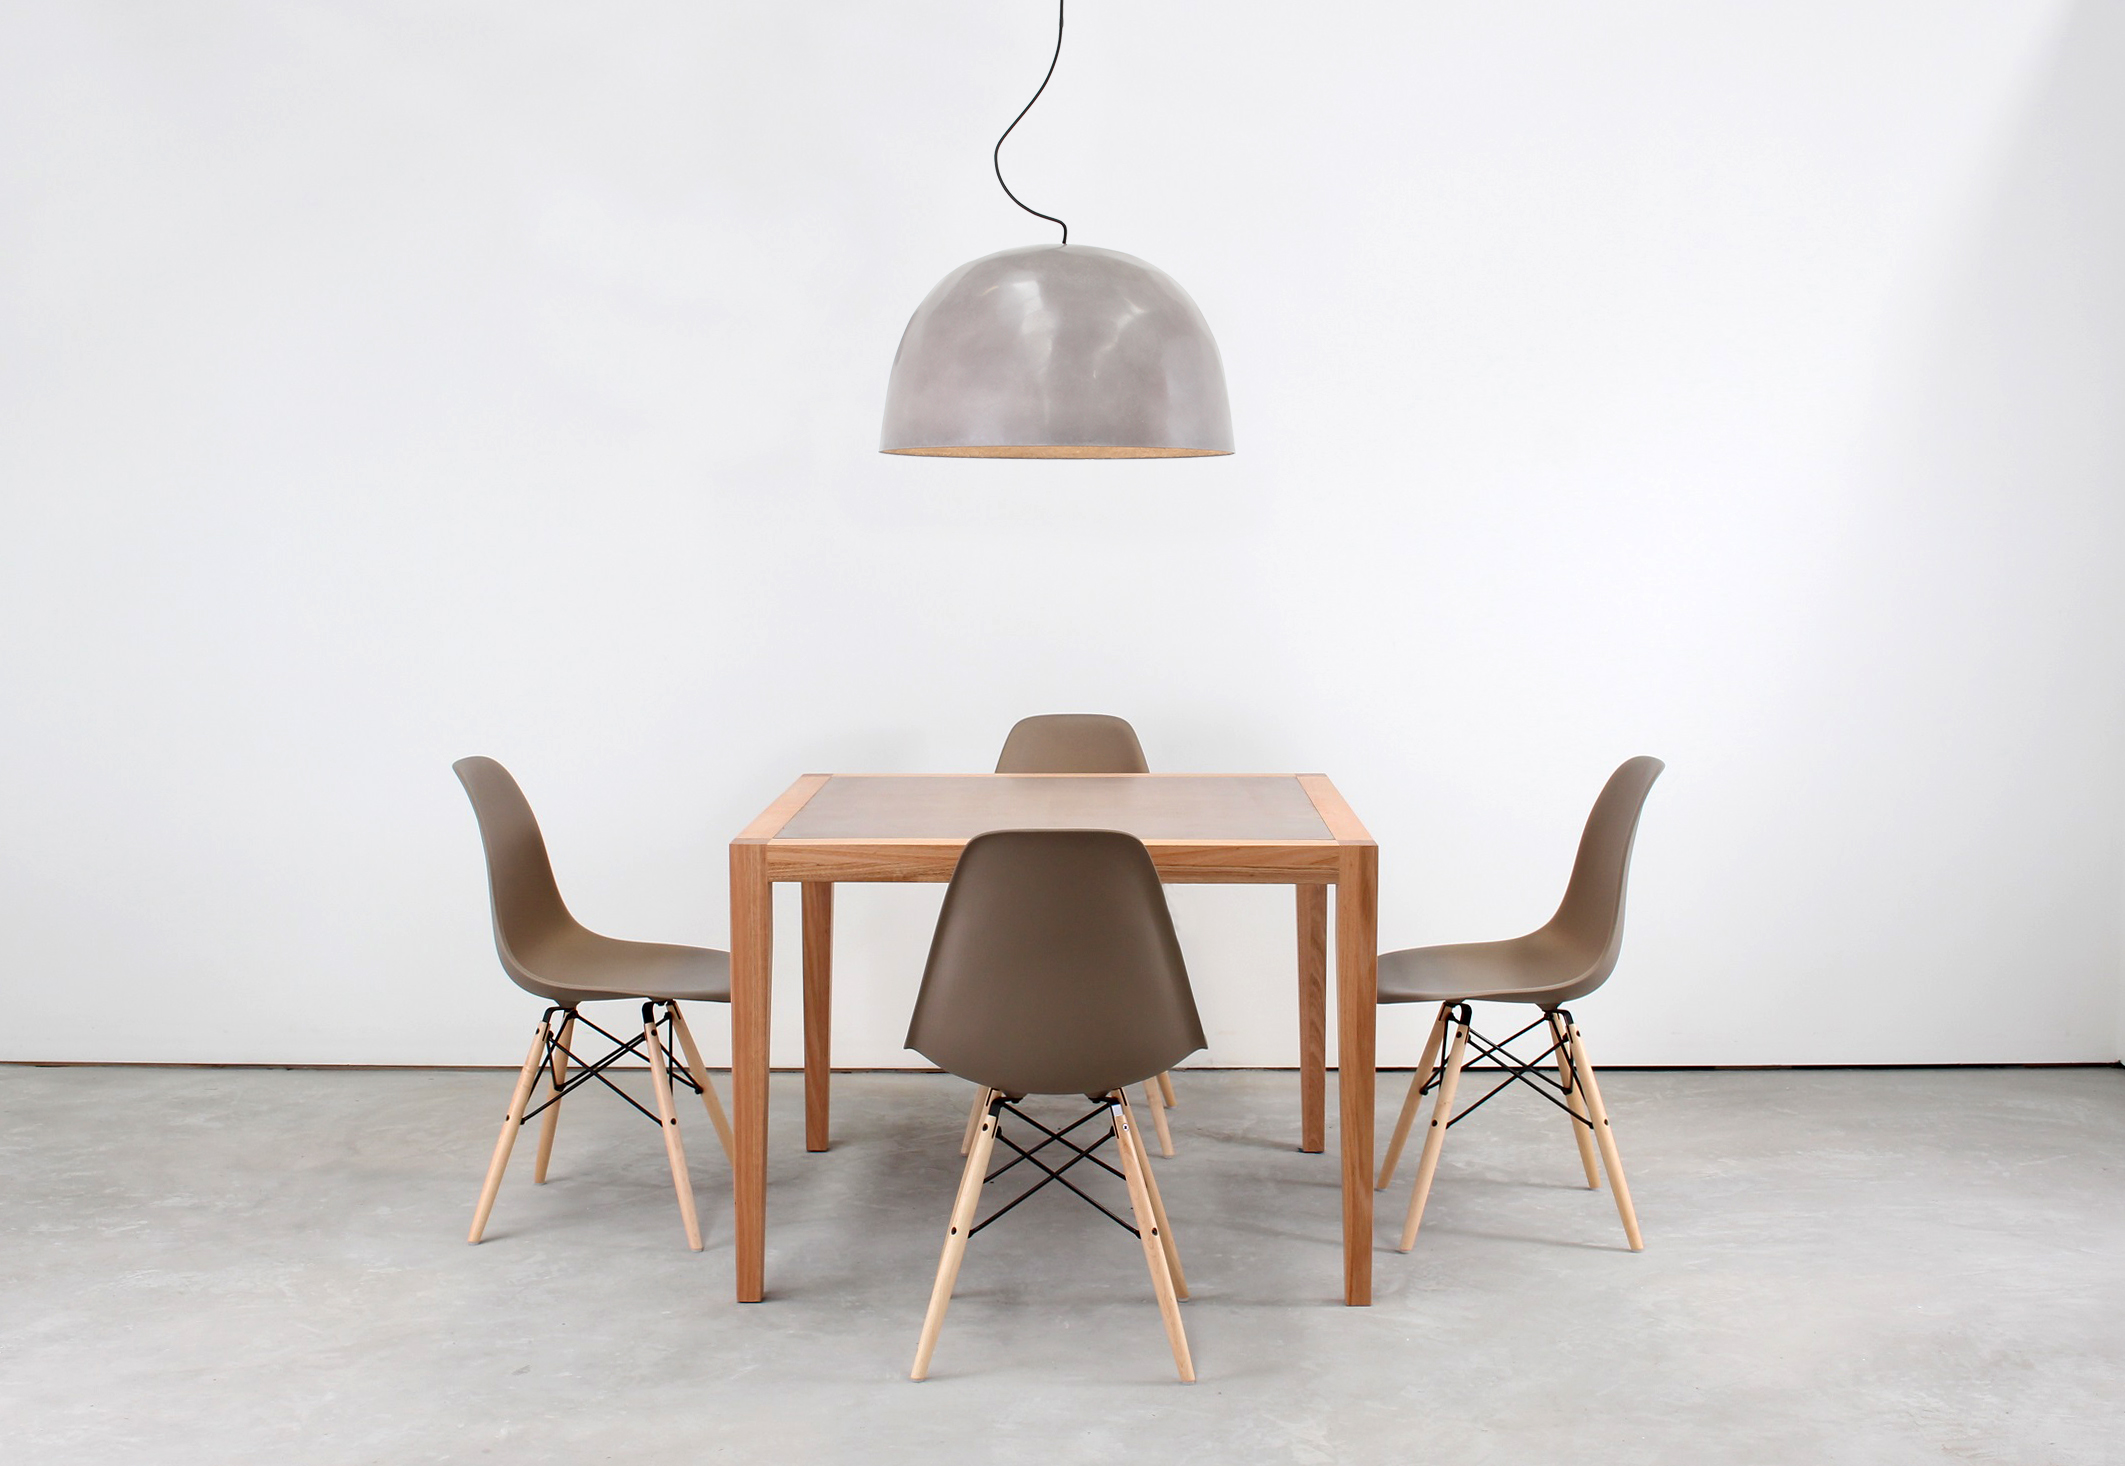 Neli Timber and Concrete Dining Table Set - 4 Seat with Snowi Concrete Pendant Light